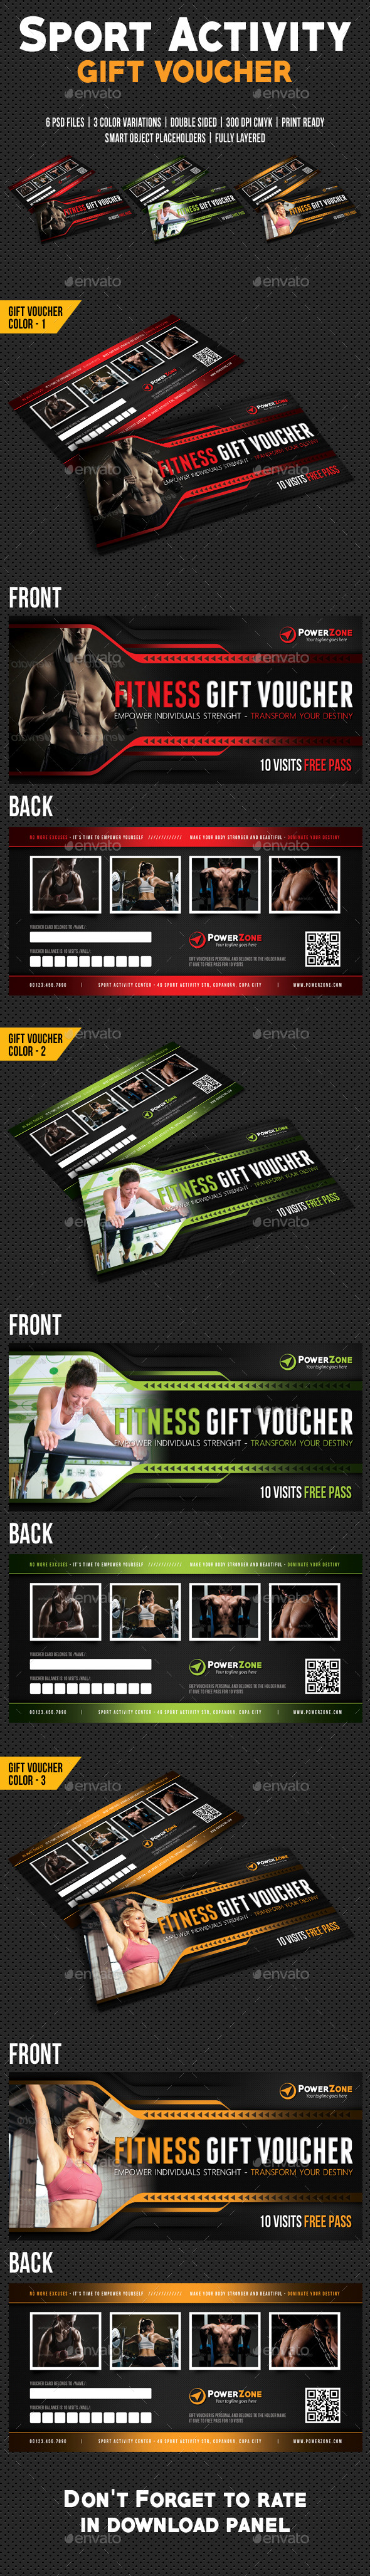 GraphicRiver Sport Activity Gift Voucher 04 10380818